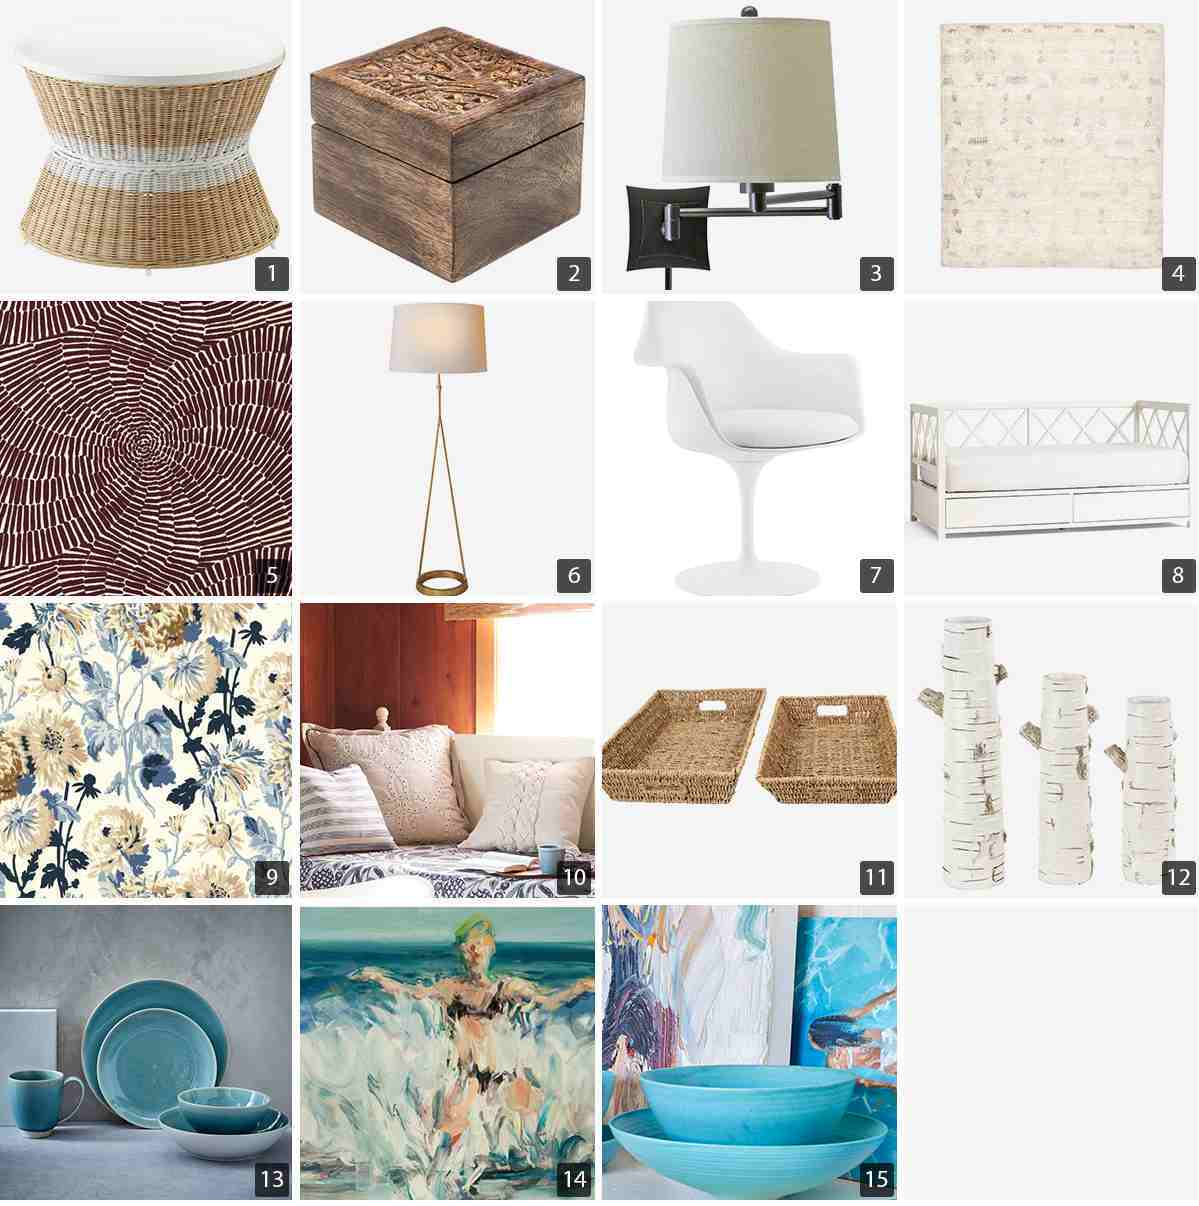 Collage of home goods including a wicker coffee table, blue dinnerware set, and floor lamp photo